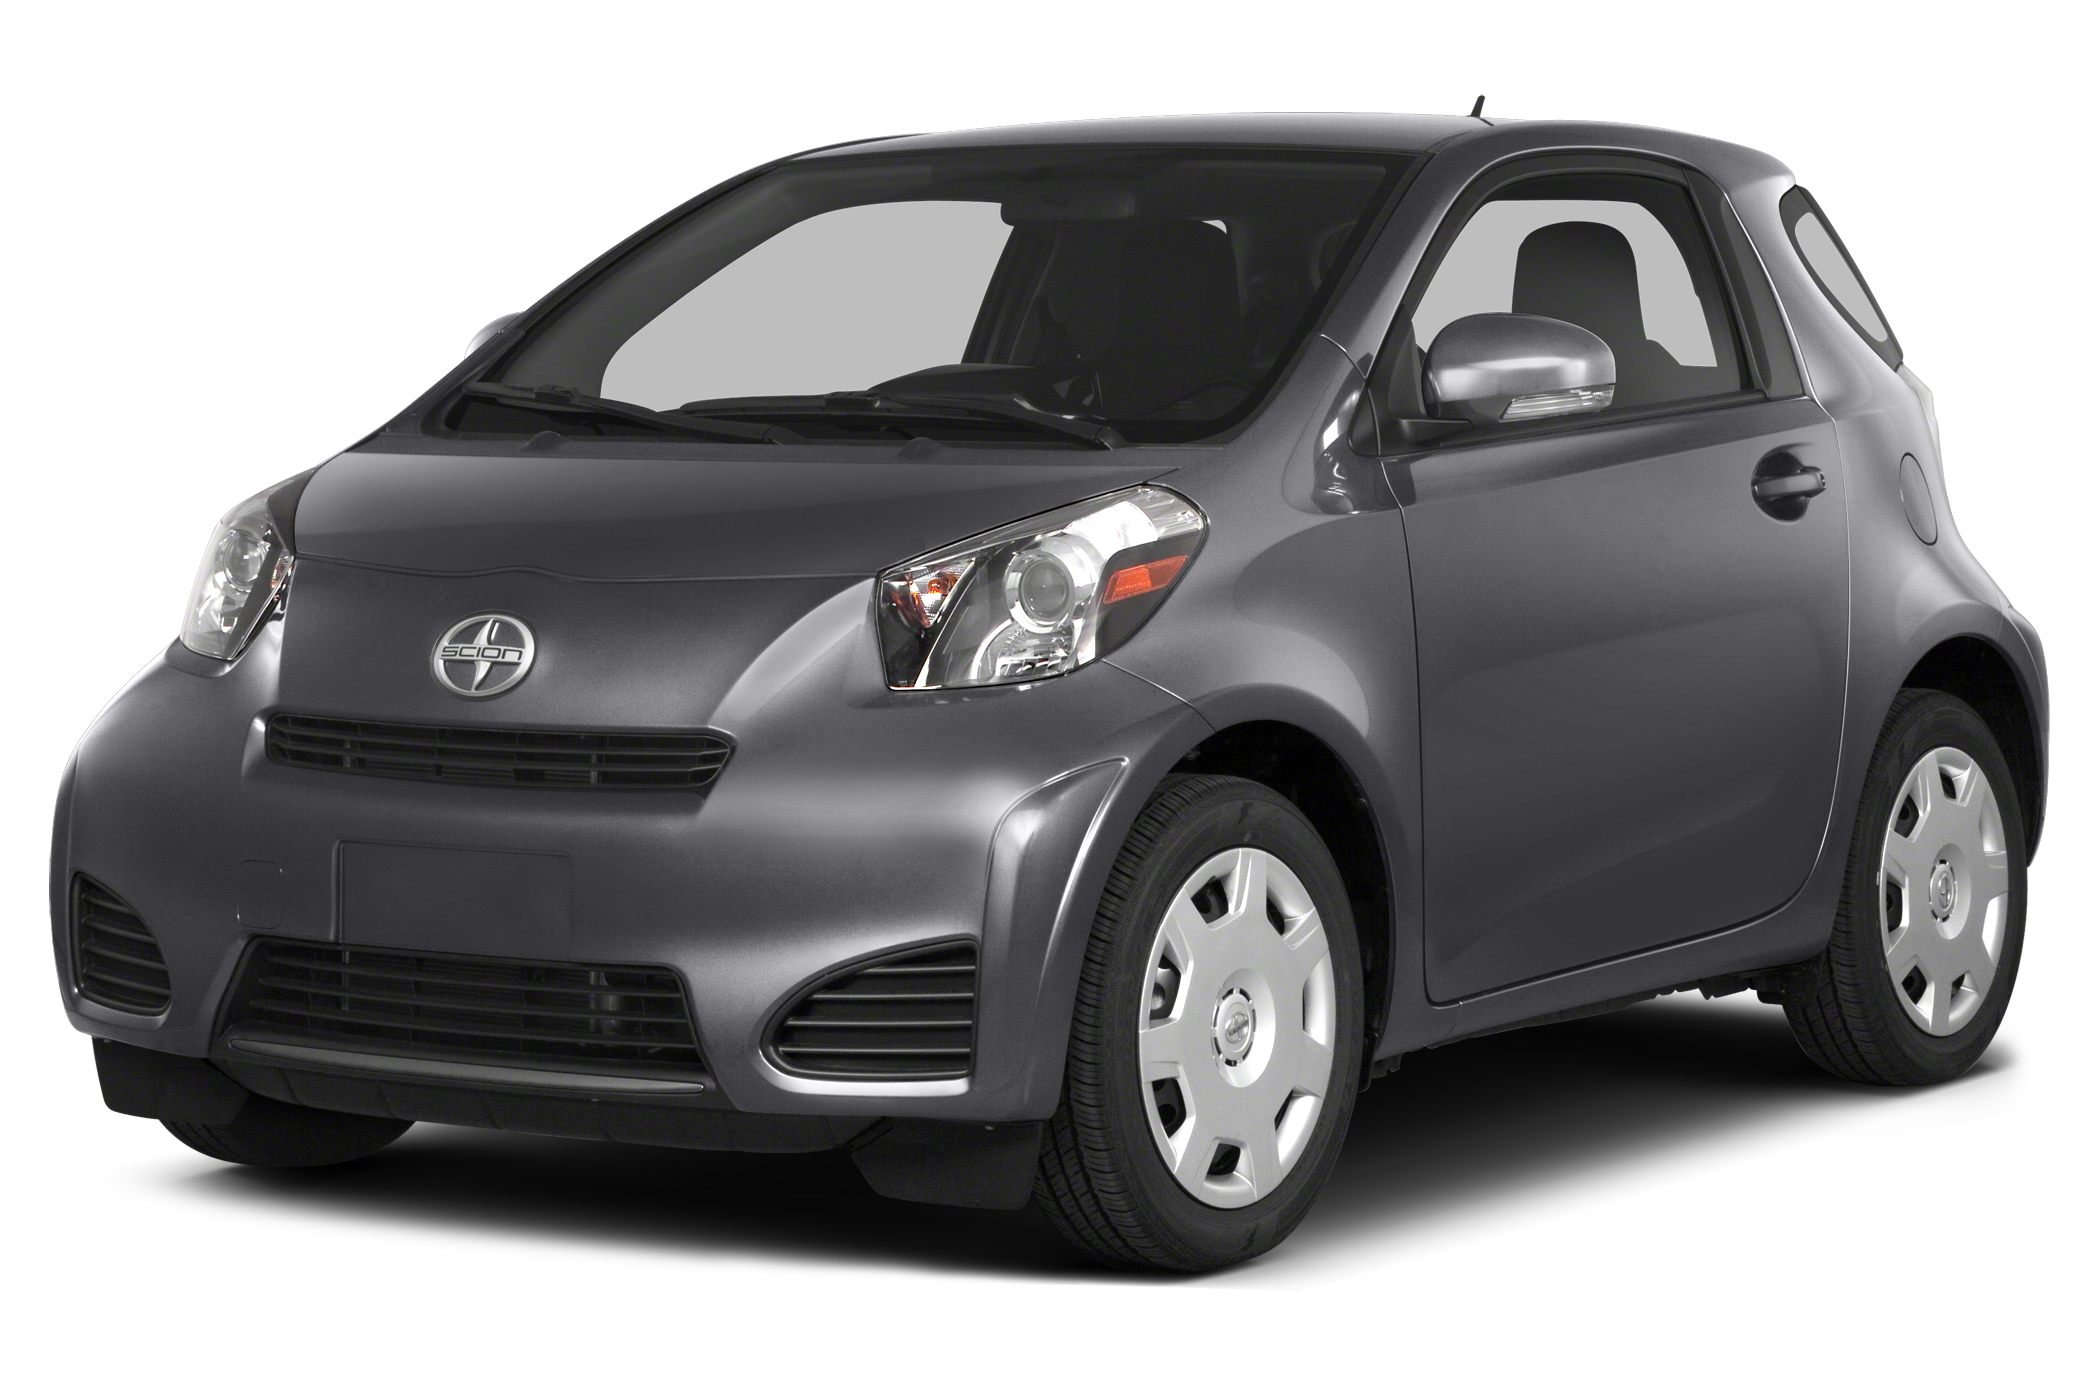 2012 Scion IQ Base Hatchback for sale in Chicago for $10,885 with 35,533 miles